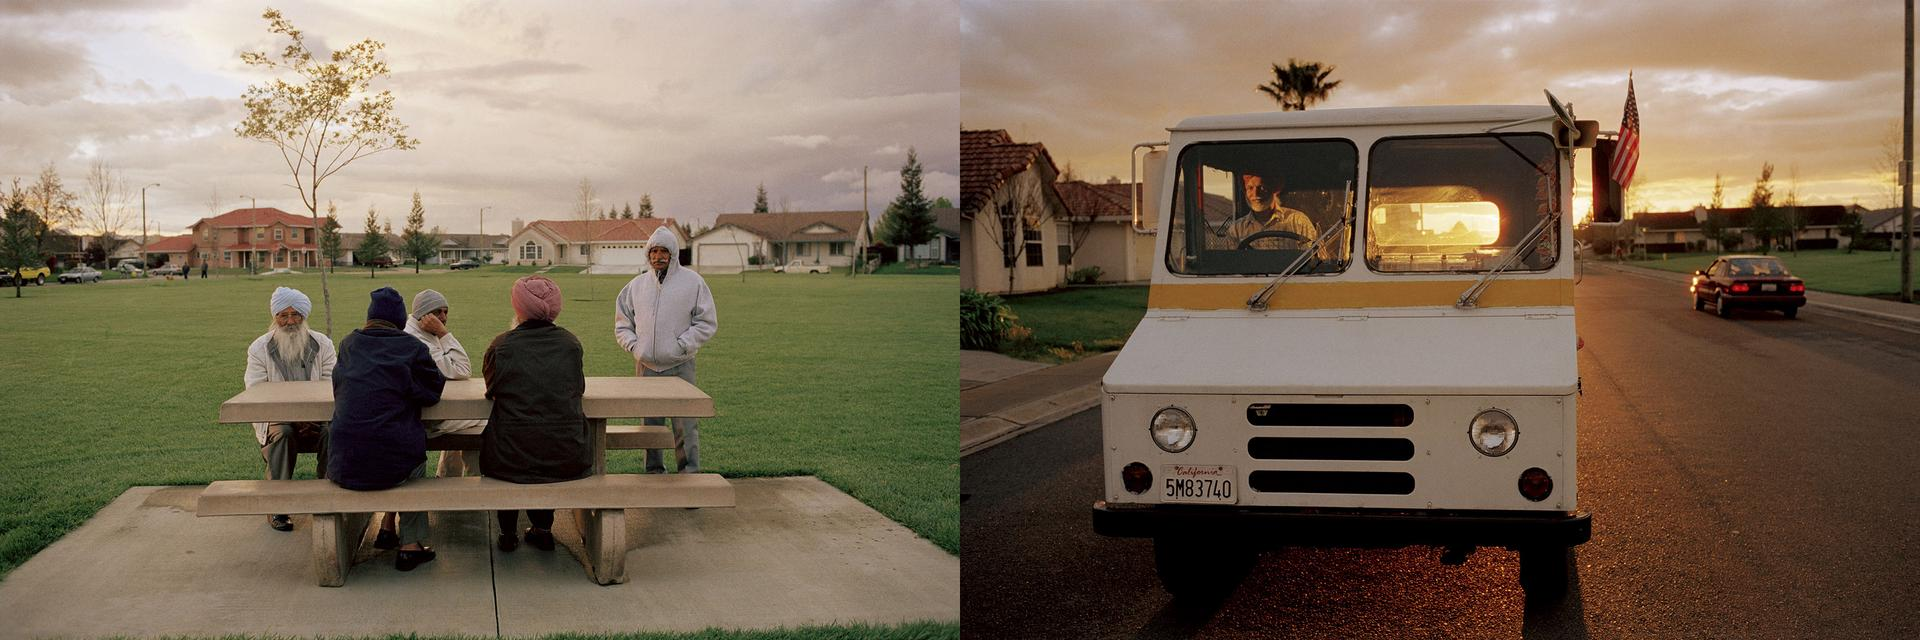 "Gauri Gill, *U.S. Mailman/Men in Park. Yuba City 2001*, 2001, from the series ""The Americans,"" 2000–07. Archival pigment print, 16 1/2 x 50 inches."